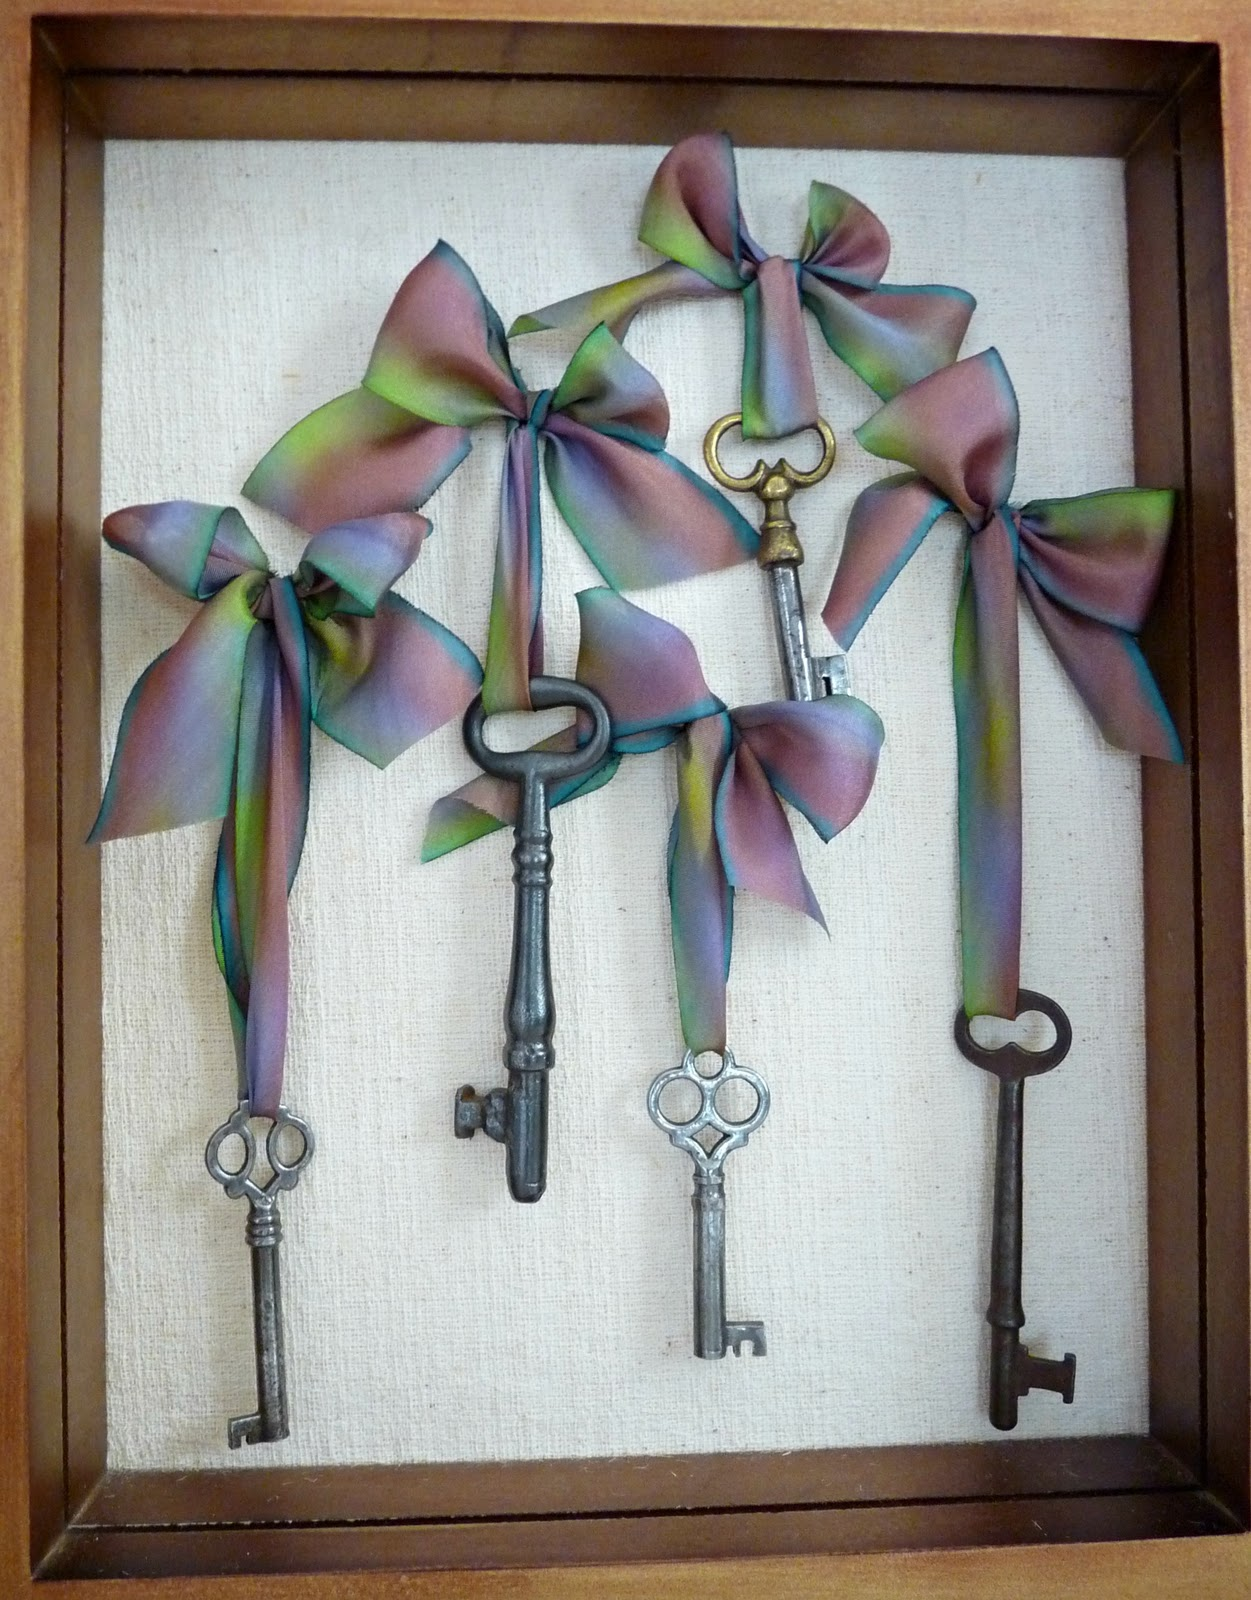 Frame vintage skeleton keys for display